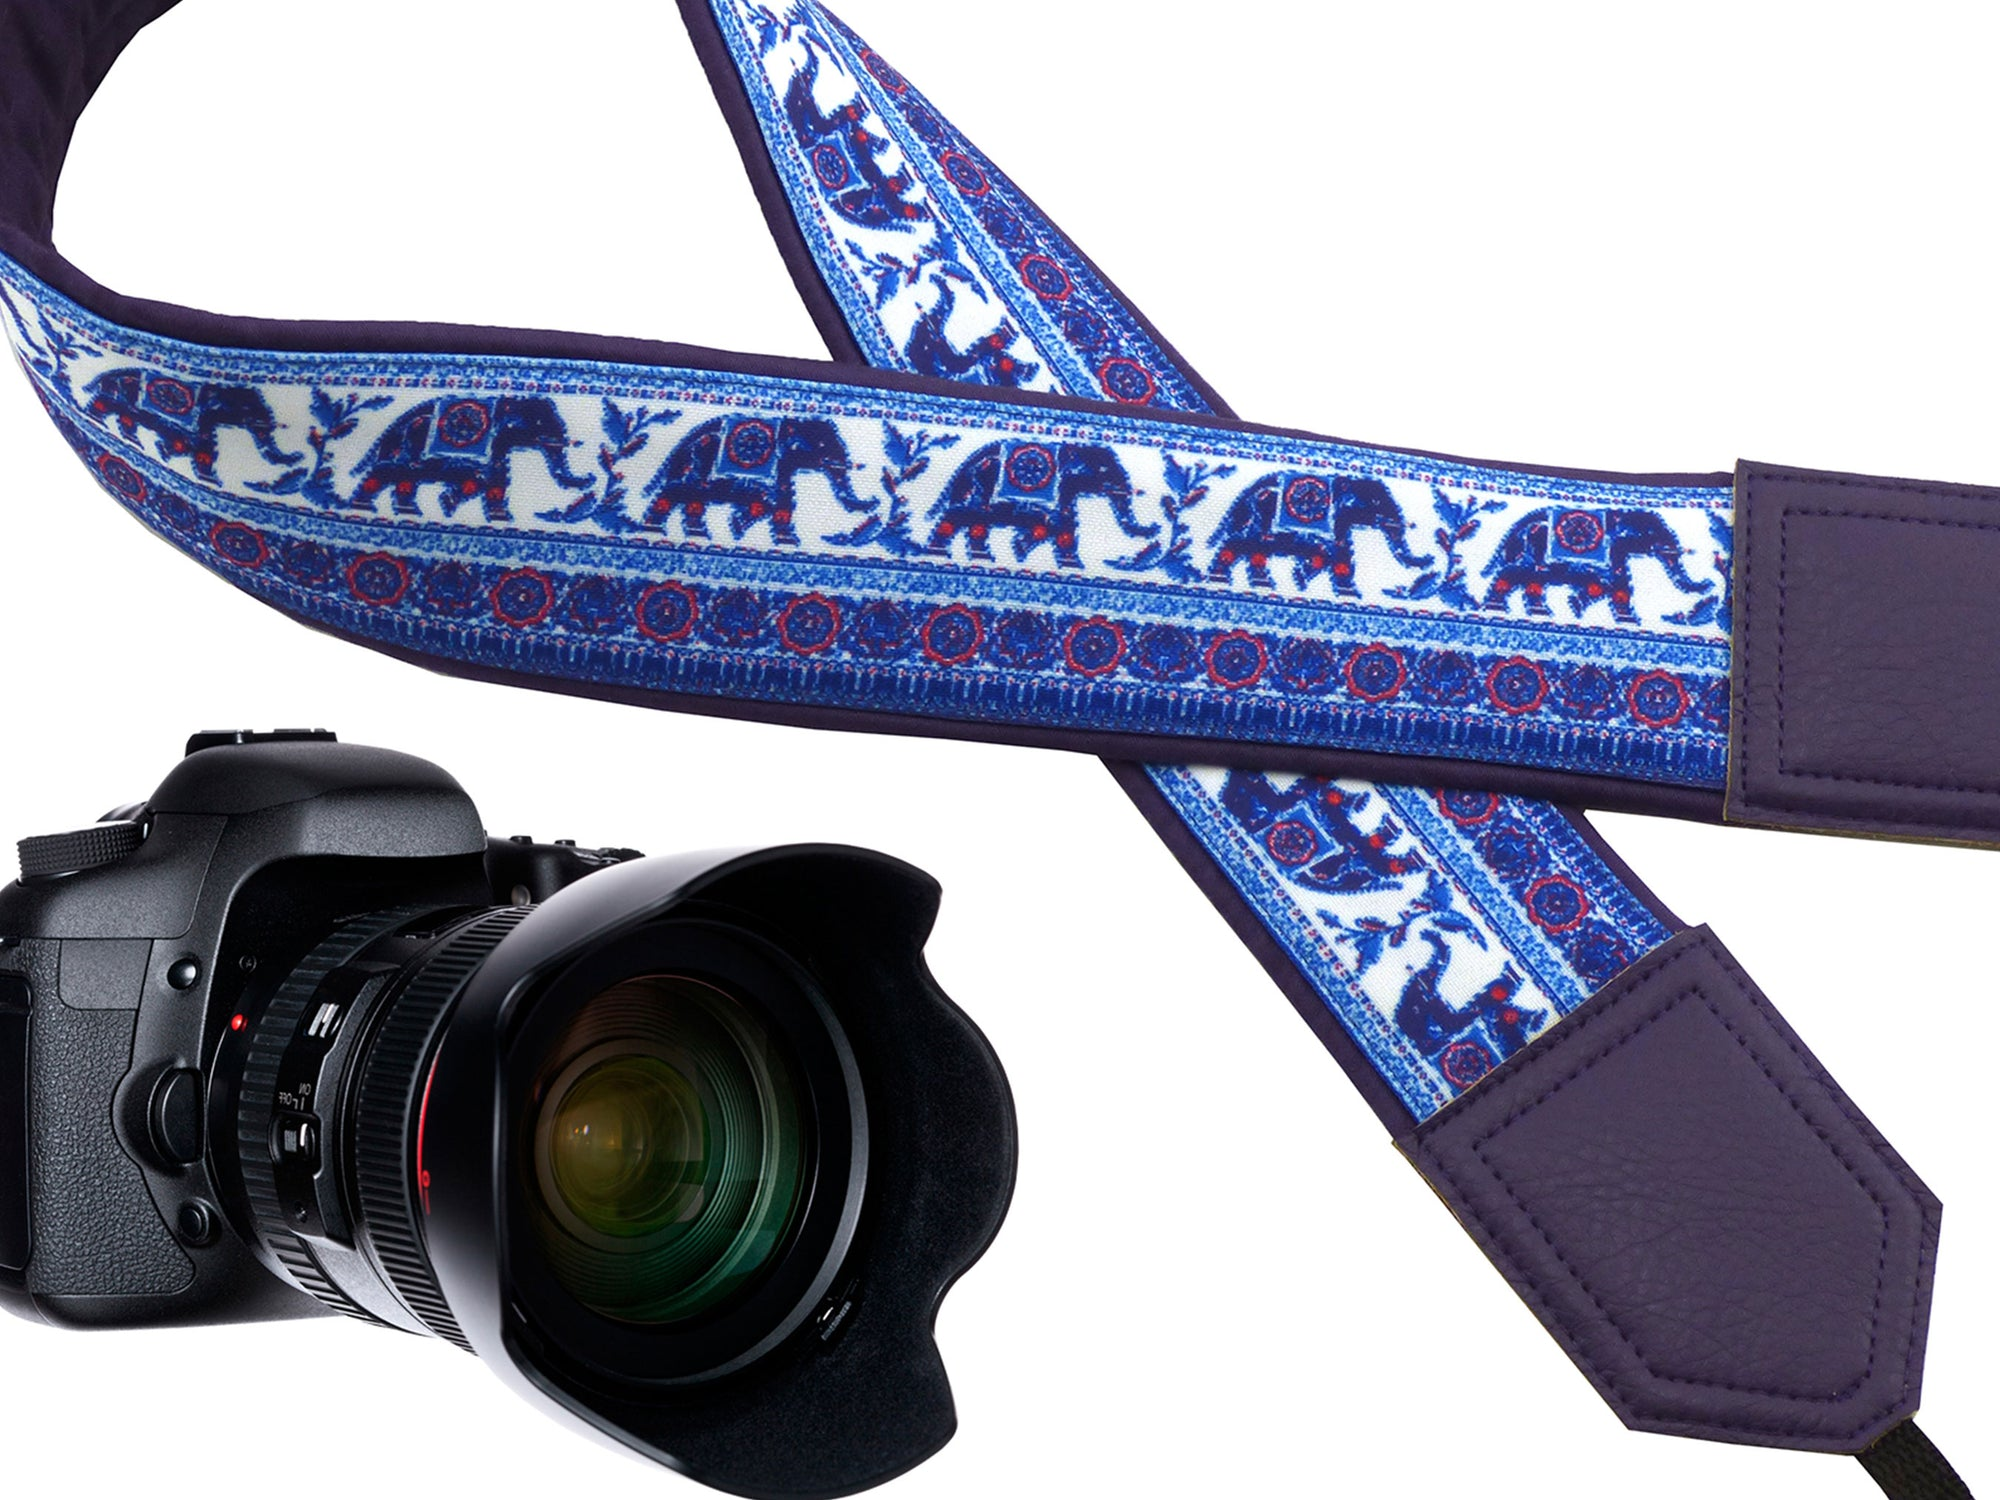 DSLR Camera strap by InTePro Ethnic classic designer camera strap Purple and blue design with lucky elephants Great gift for photographer.